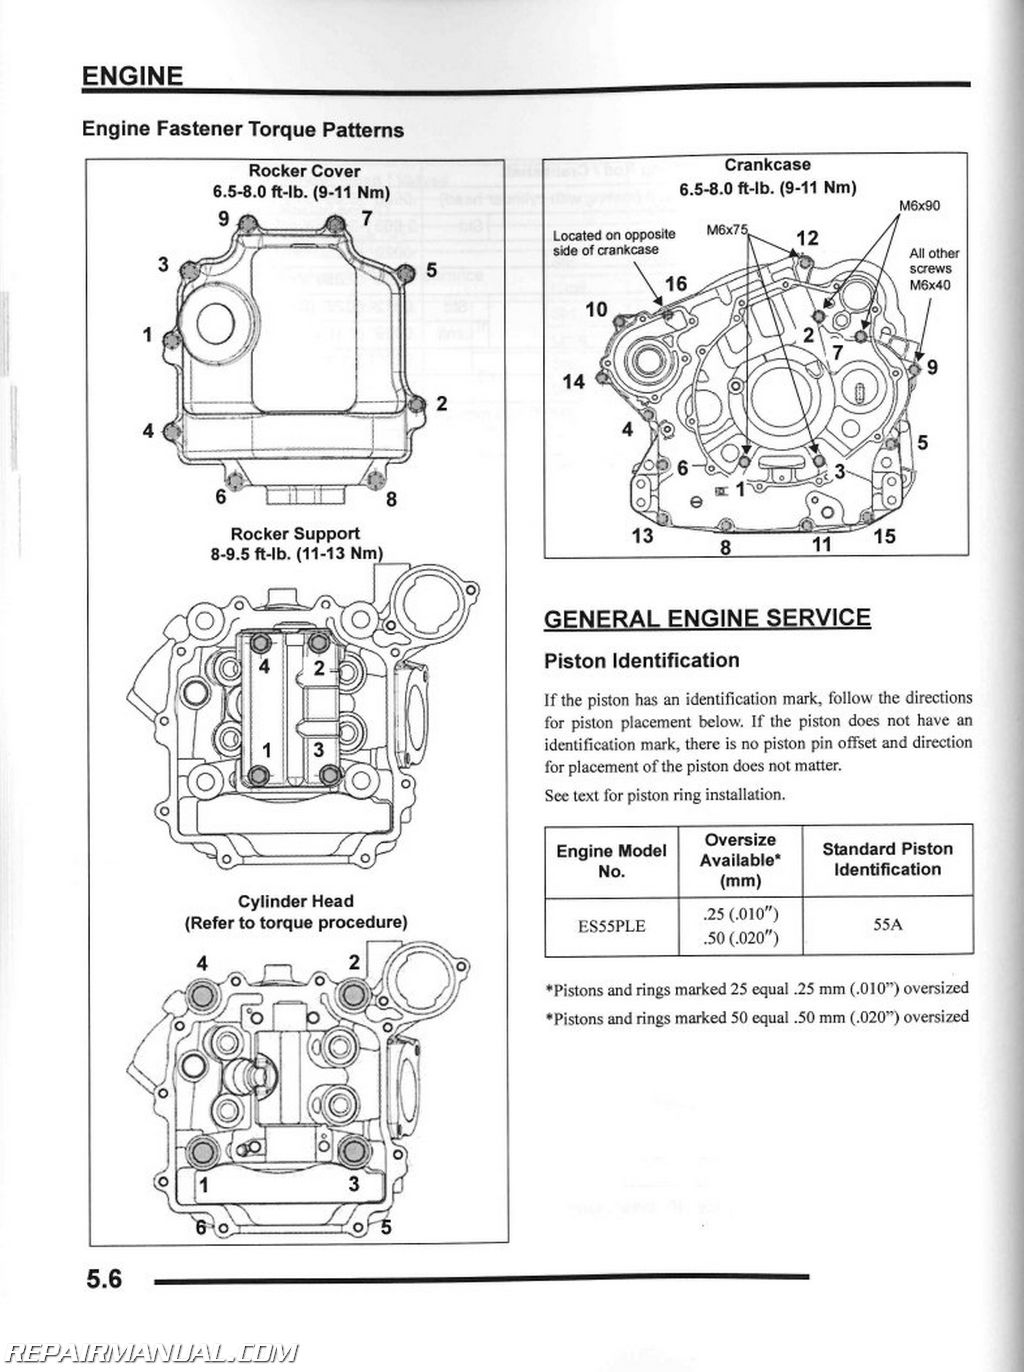 2007 ram 2500 wiring diagram 2010 polaris sportsman xp 550 atv service manual 2008 dodge ram 2500 wiring diagram #2